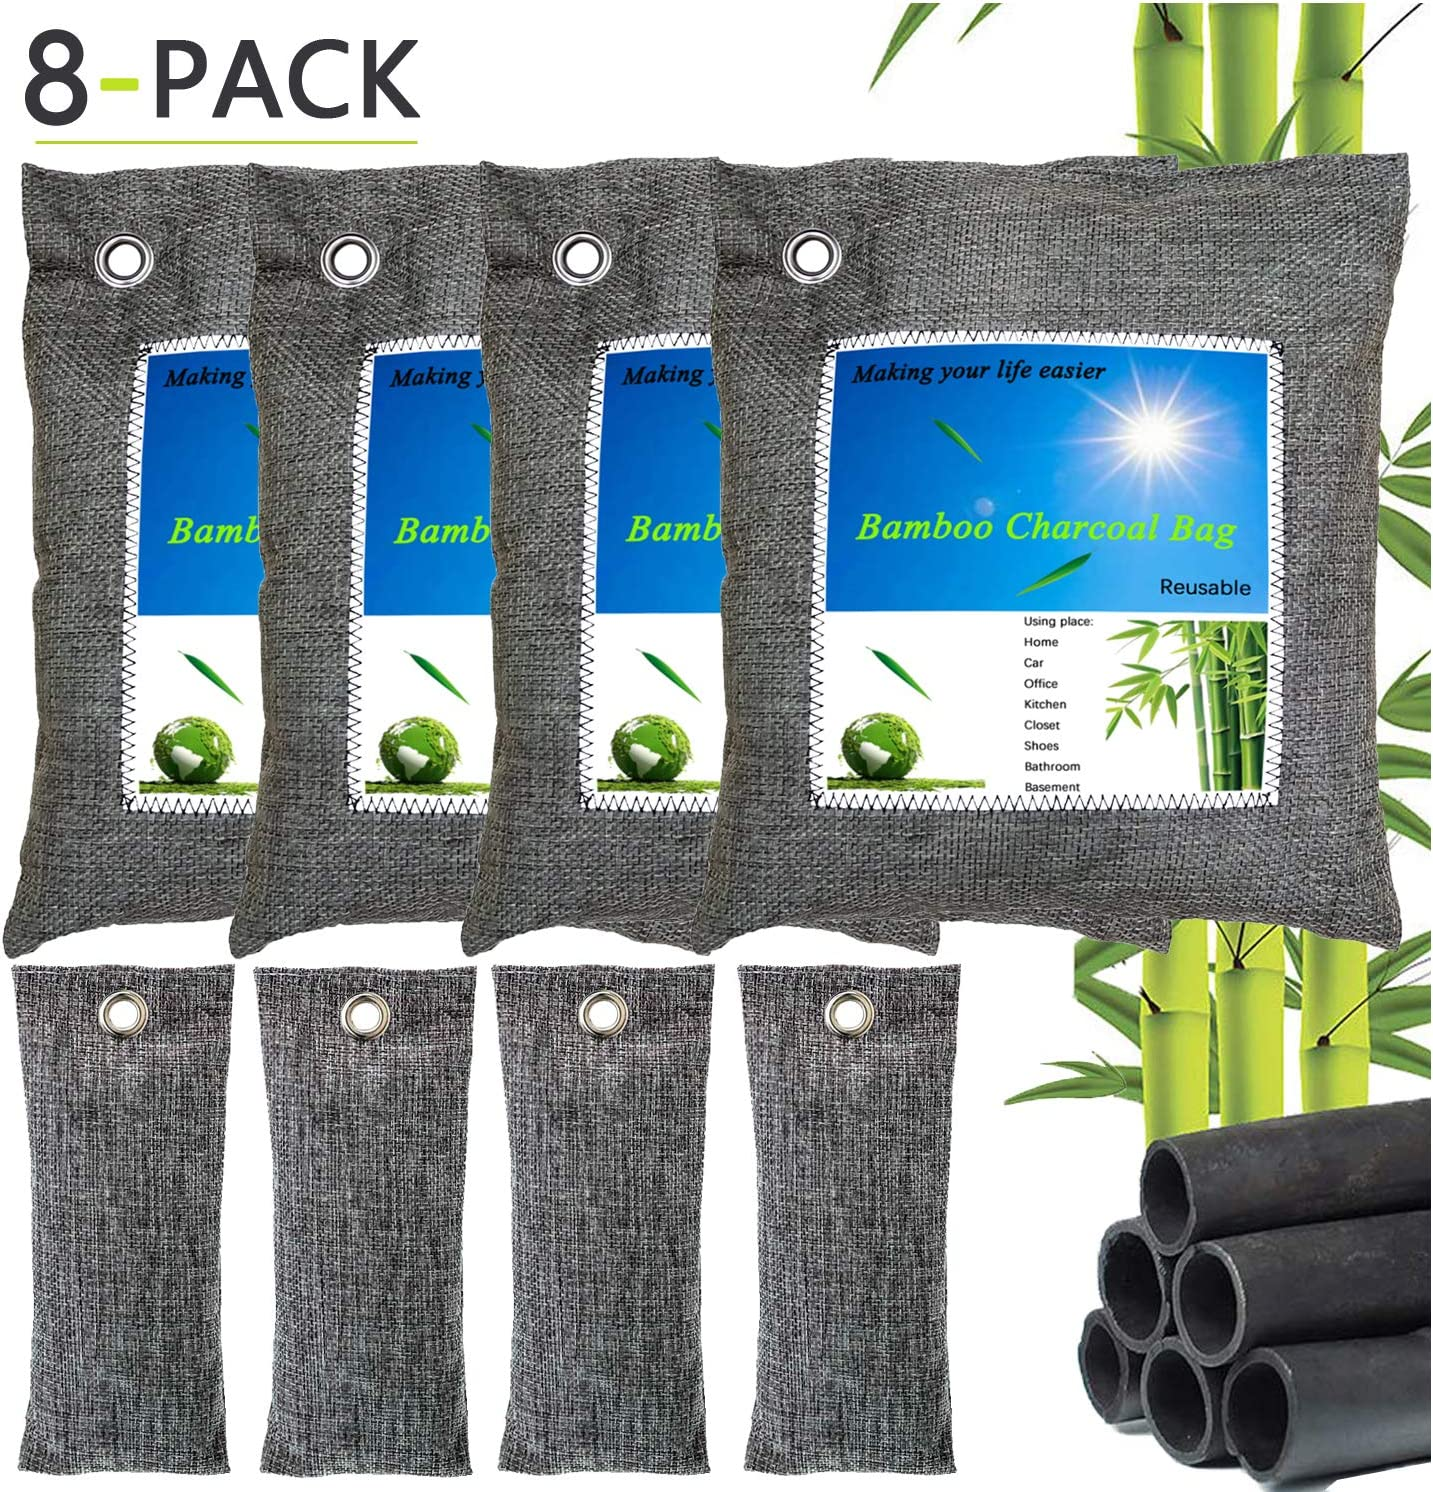 Bamboo Charcoal Bags 8 Pack Activated Charcoal Bag for Home,Kitchen Car, Closet, Shoes, Basement, Bathroom, Pet (4X200g,4X50g)